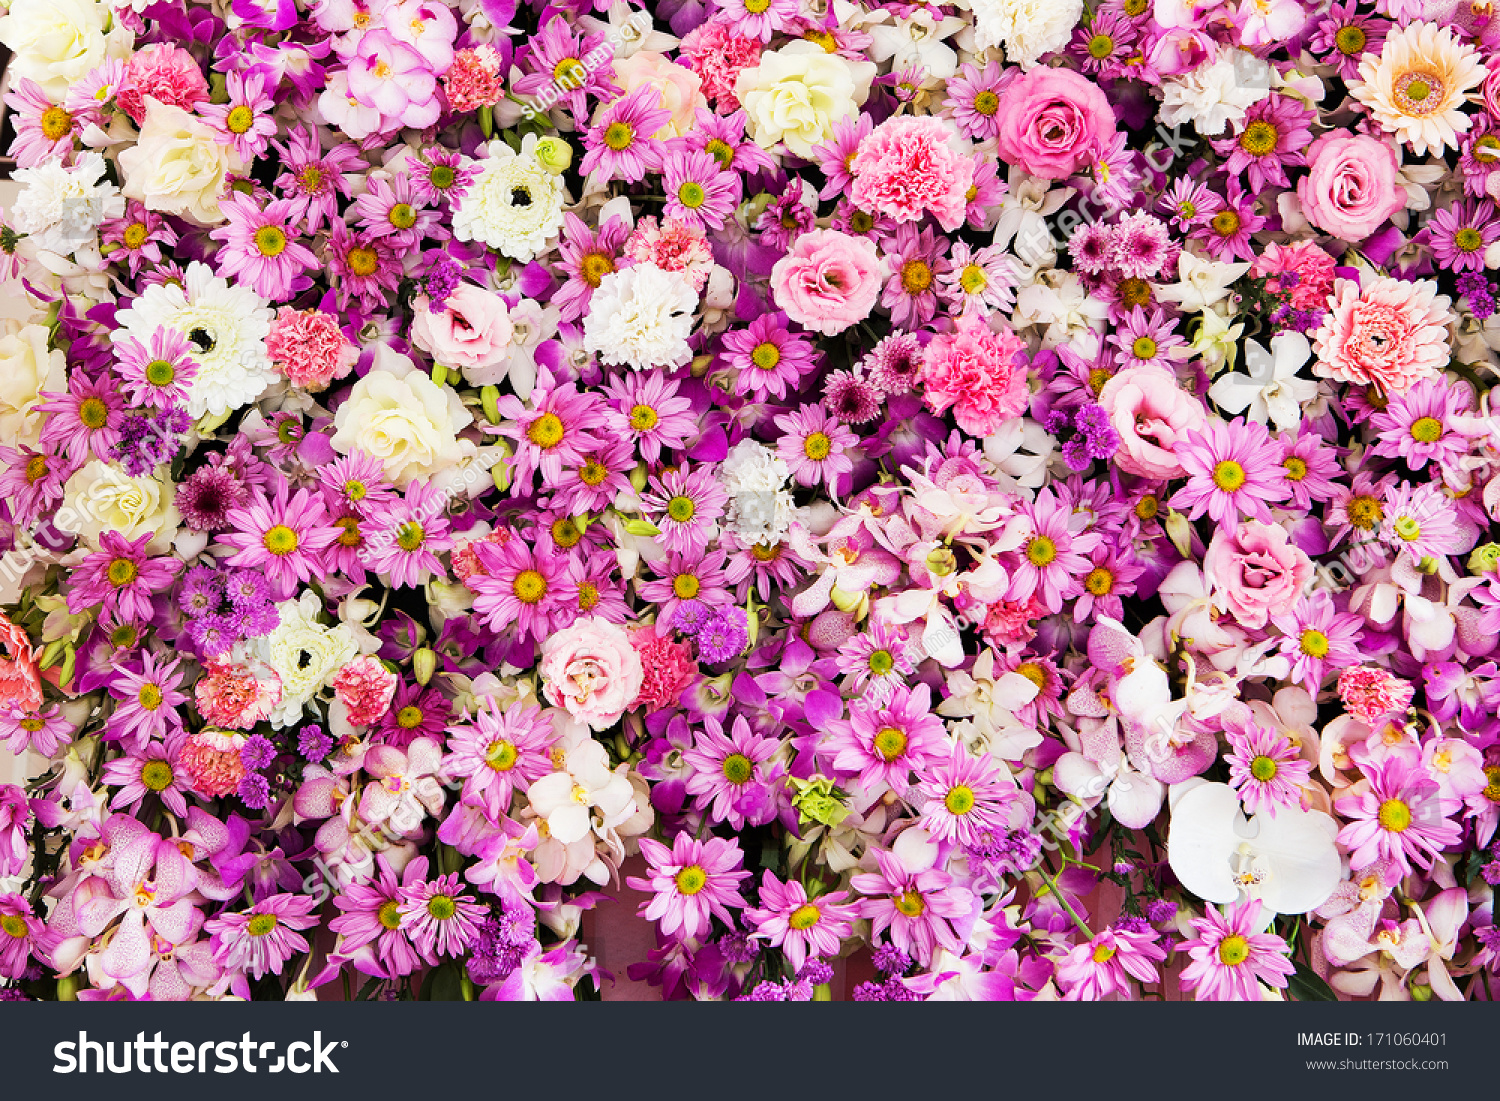 Beautiful flowers background wedding scene stock photo royalty free beautiful flowers background for wedding scene izmirmasajfo